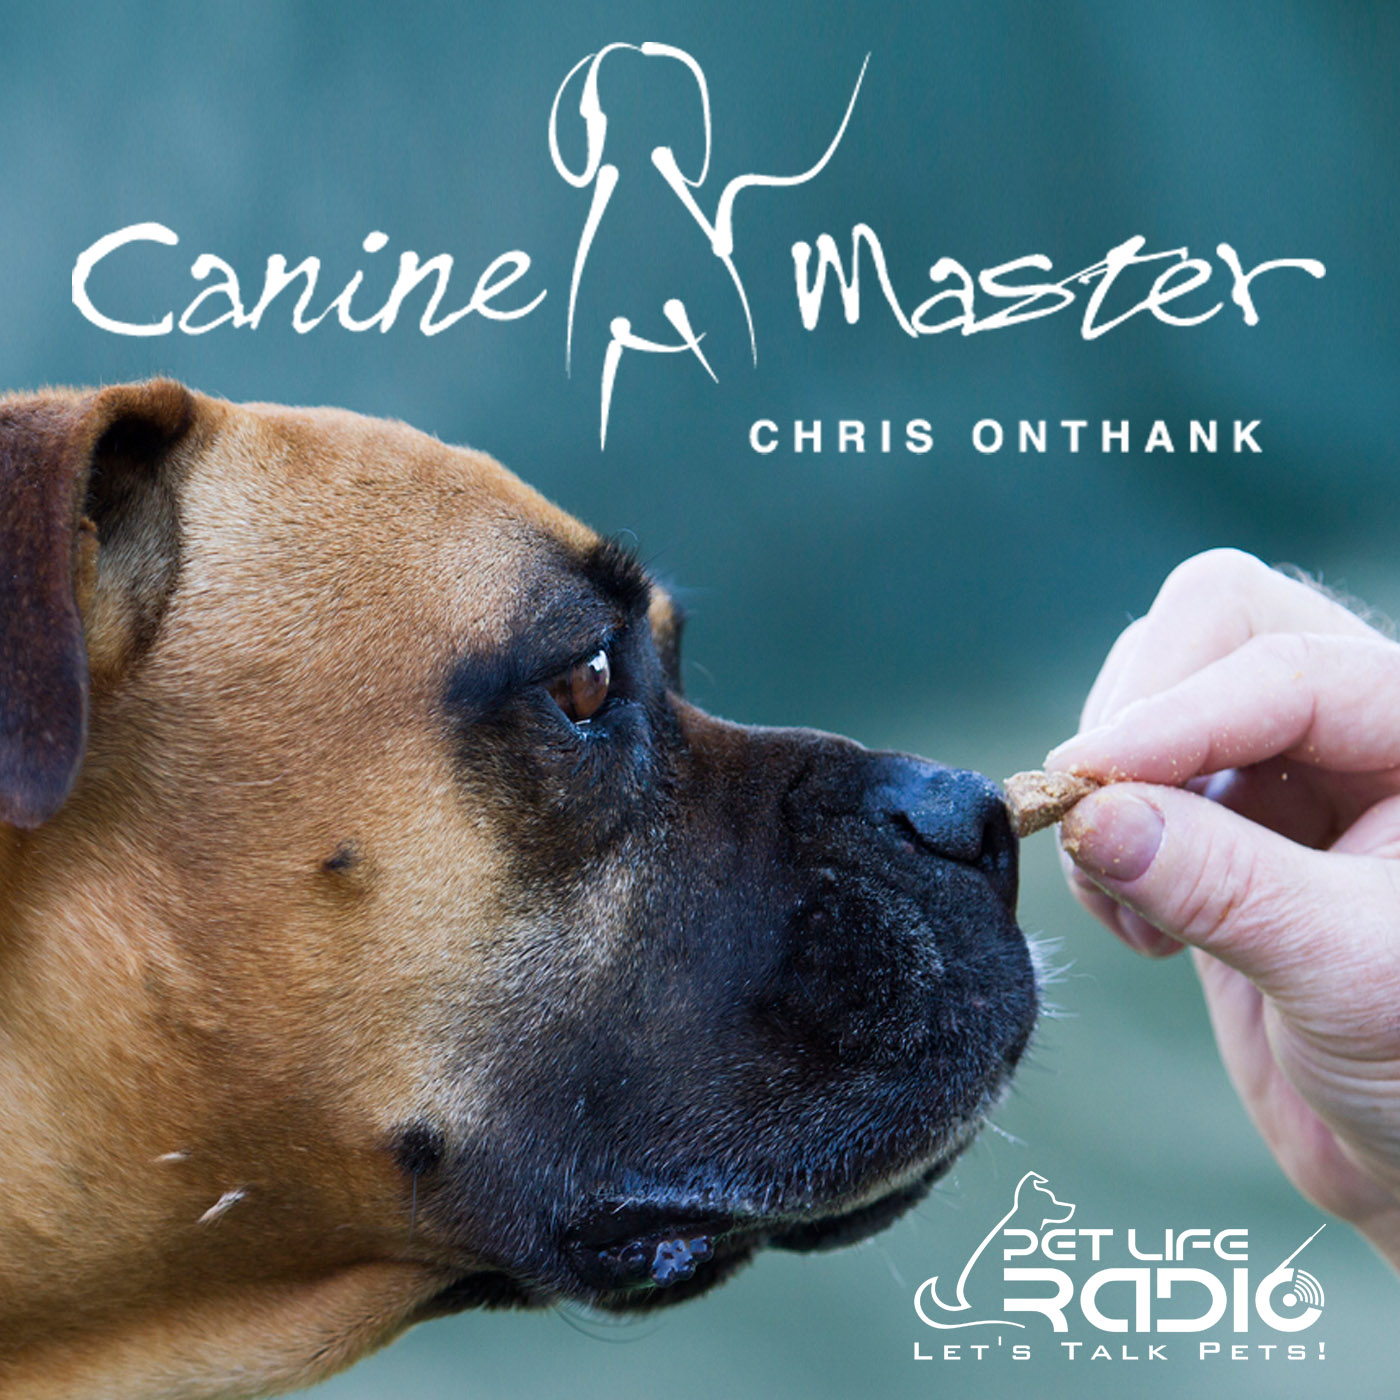 Canine Master - Dog training and behavior on Pet Life Radio (PetLifeRadio.com)